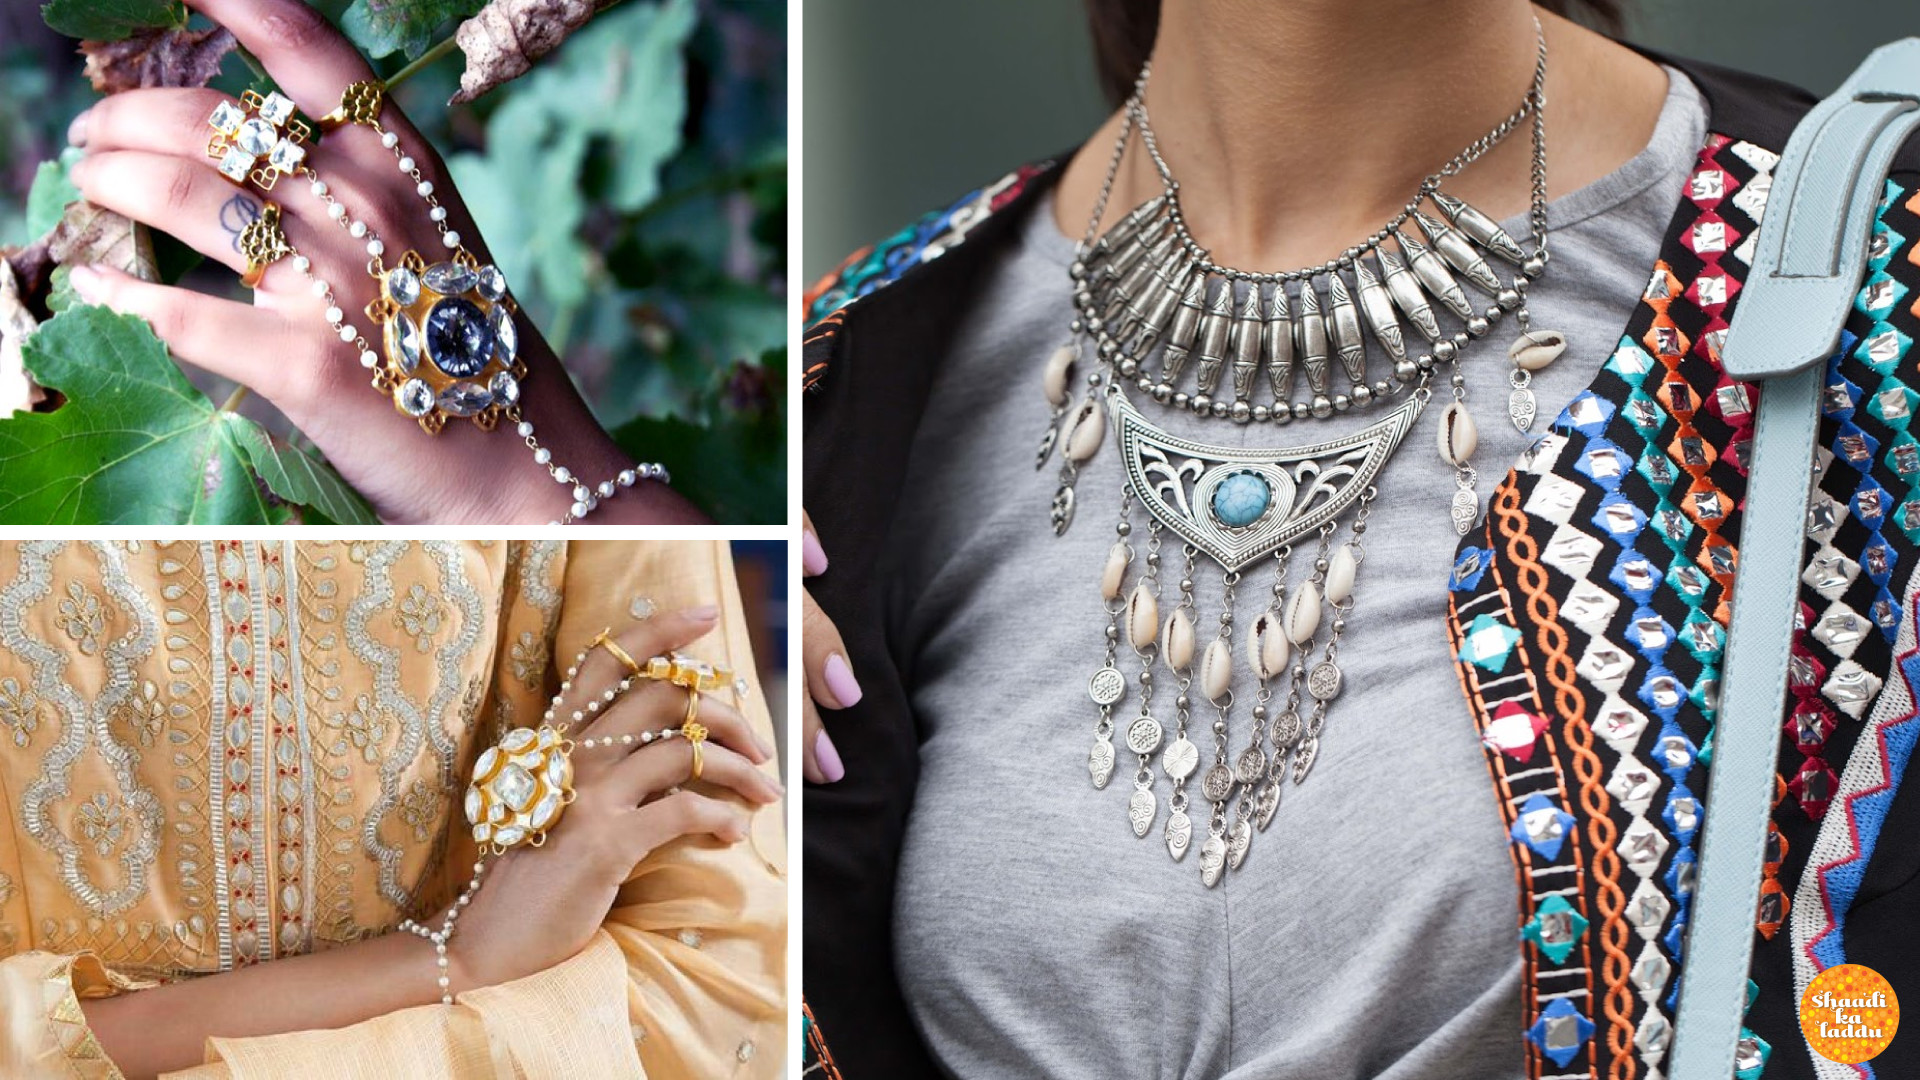 Conch shell made neck piece and designer hath-fool, rings and alternative jewellery